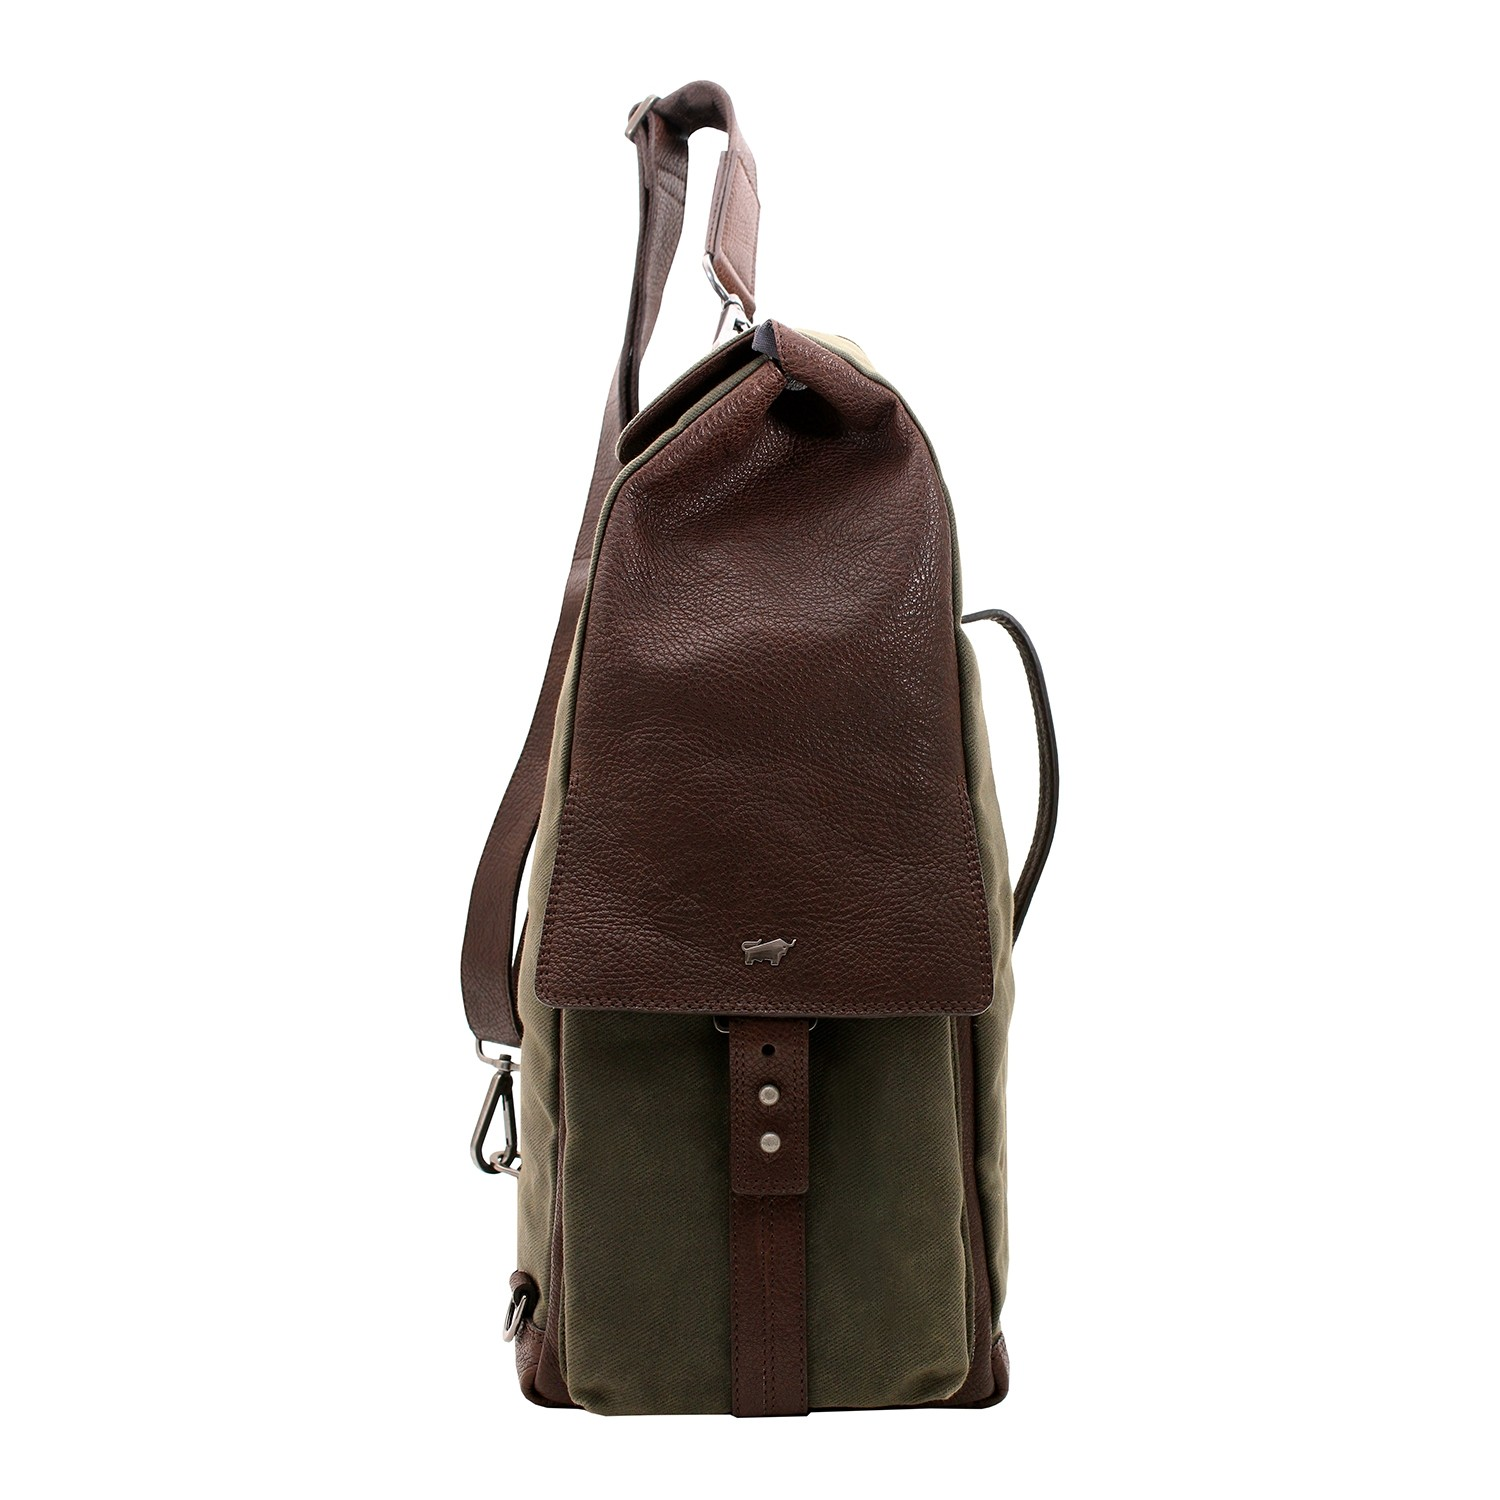 mp-duffle-bag-oak-leave-100% Cotton kombiniert mit Büffelleder-27168-582-092-31